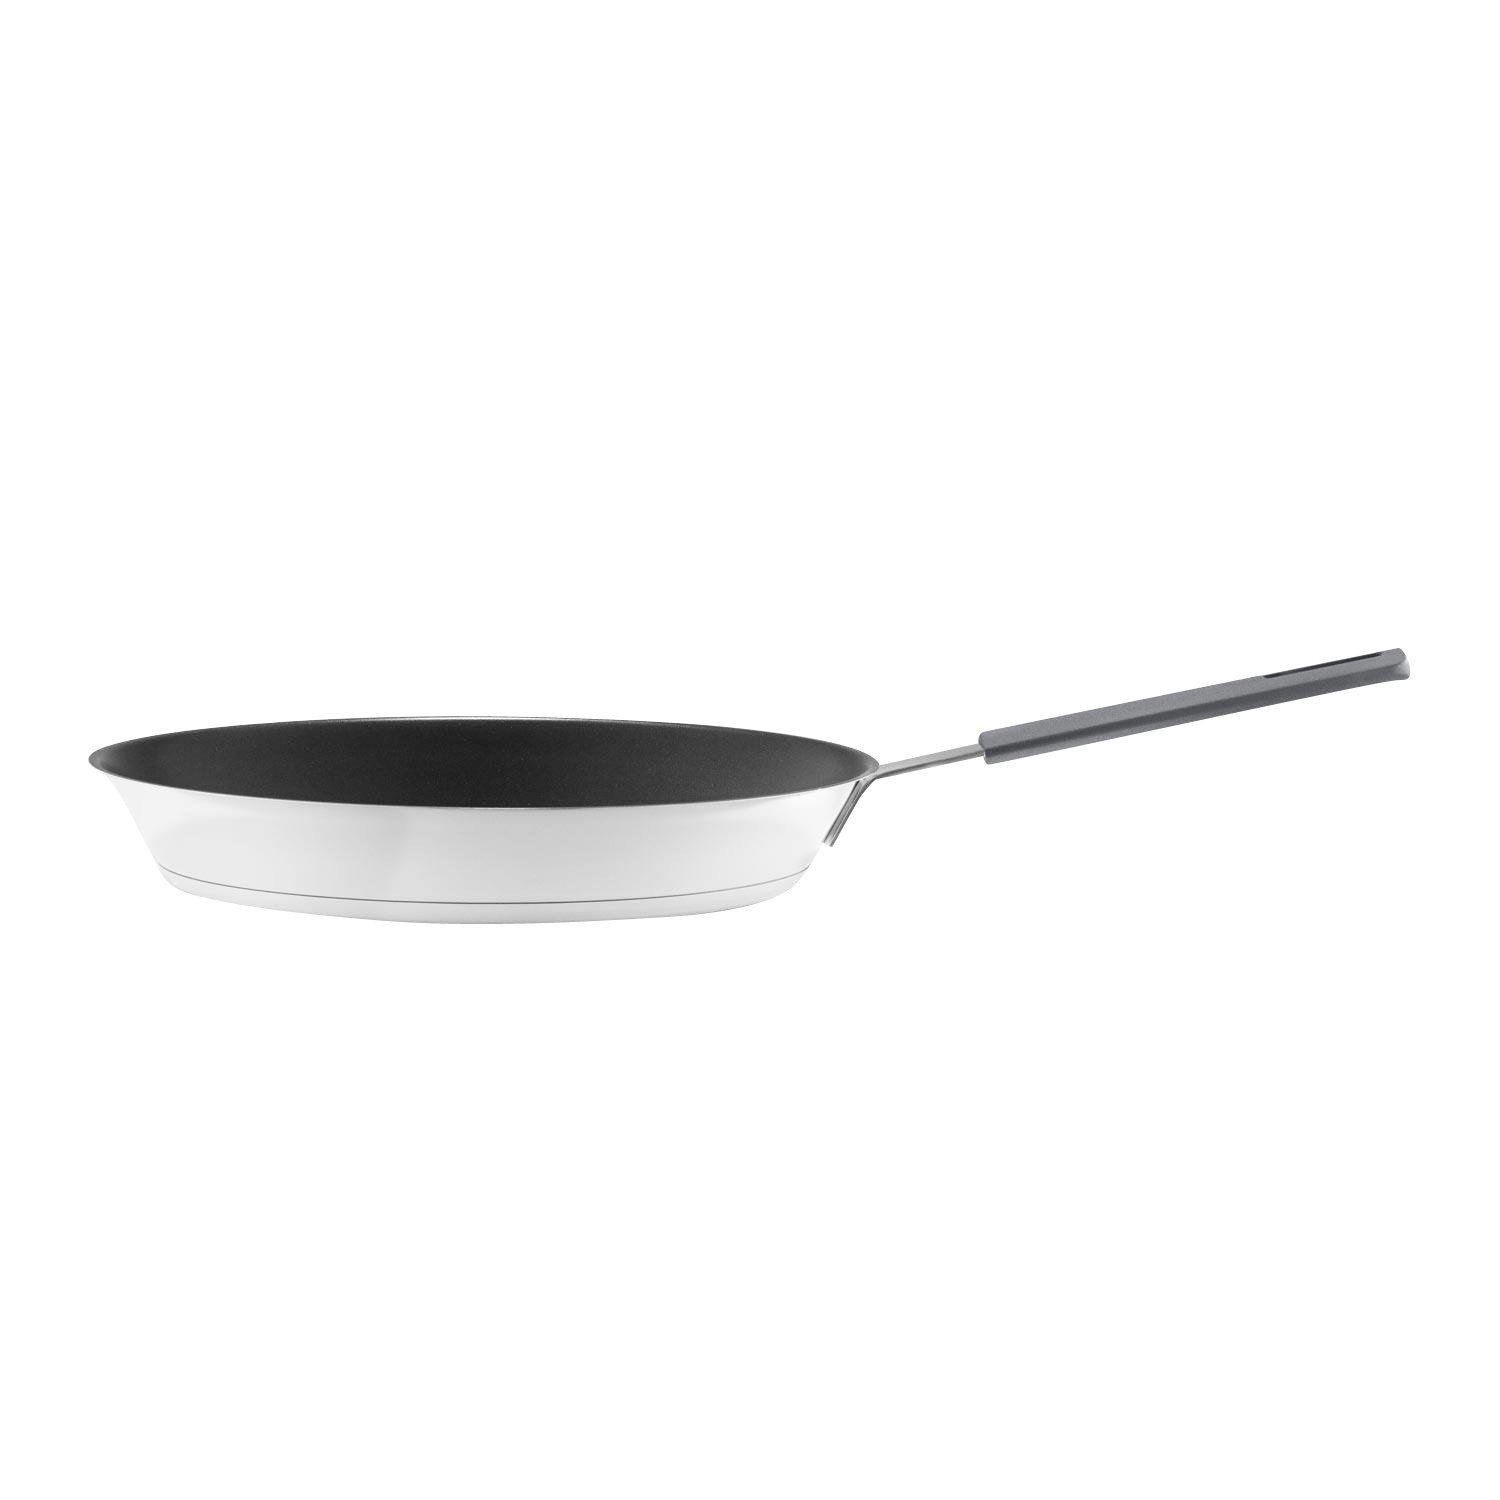 Eva Solo Gravity Cookware - Stainless Steel Frying Pan with Non-stick Slip-let Coating